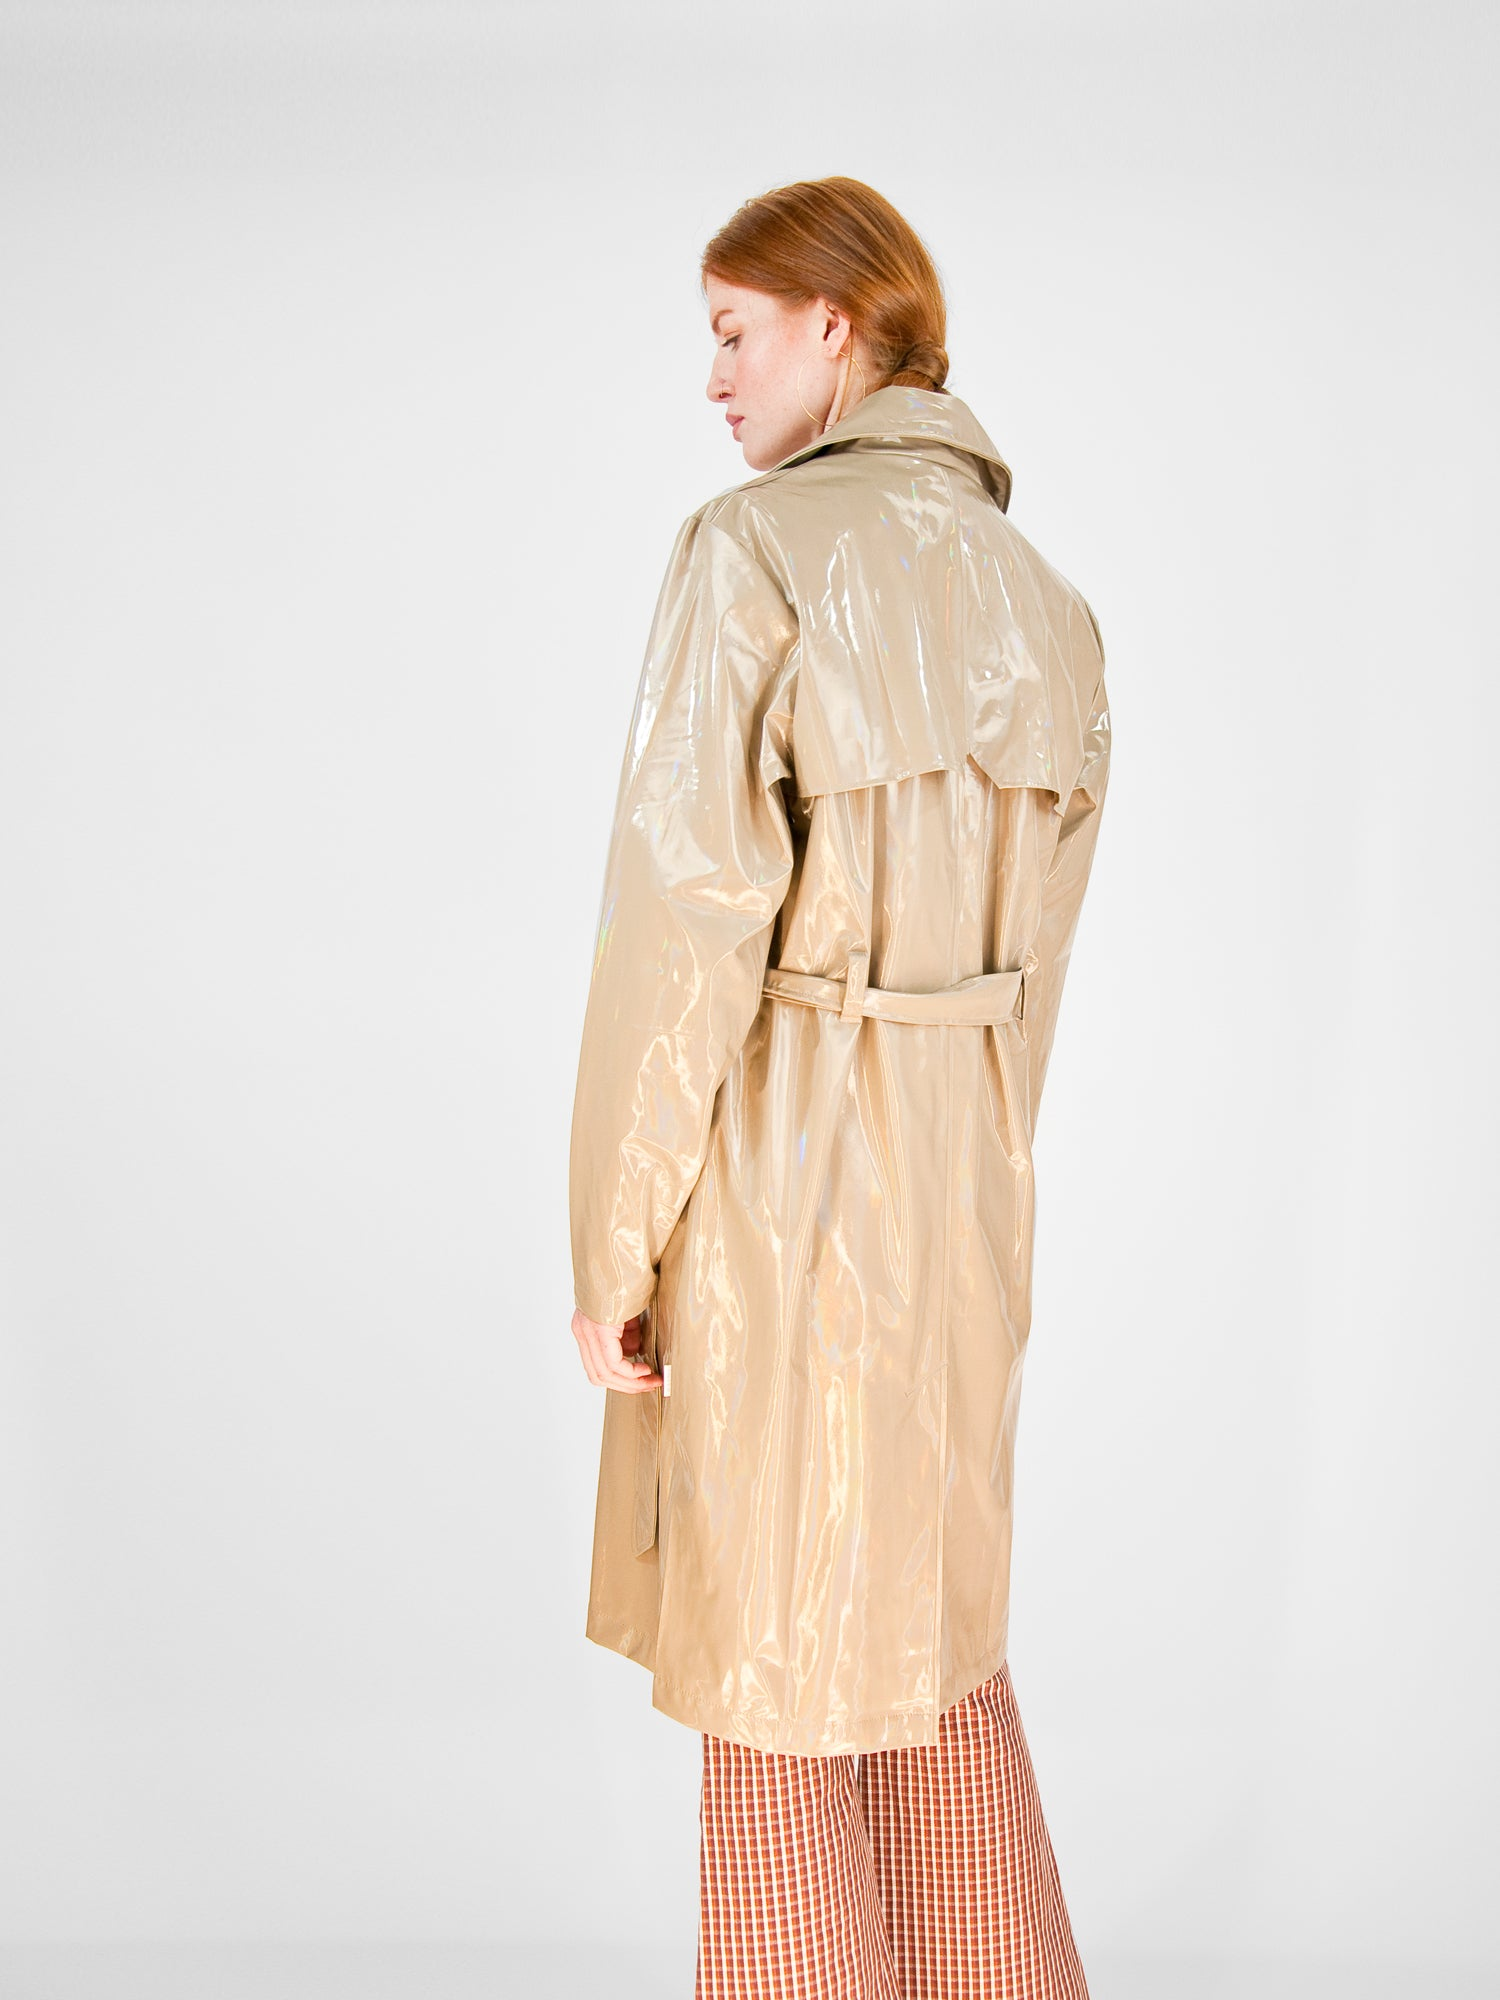 Rains - Holographic Overcoat / Beige